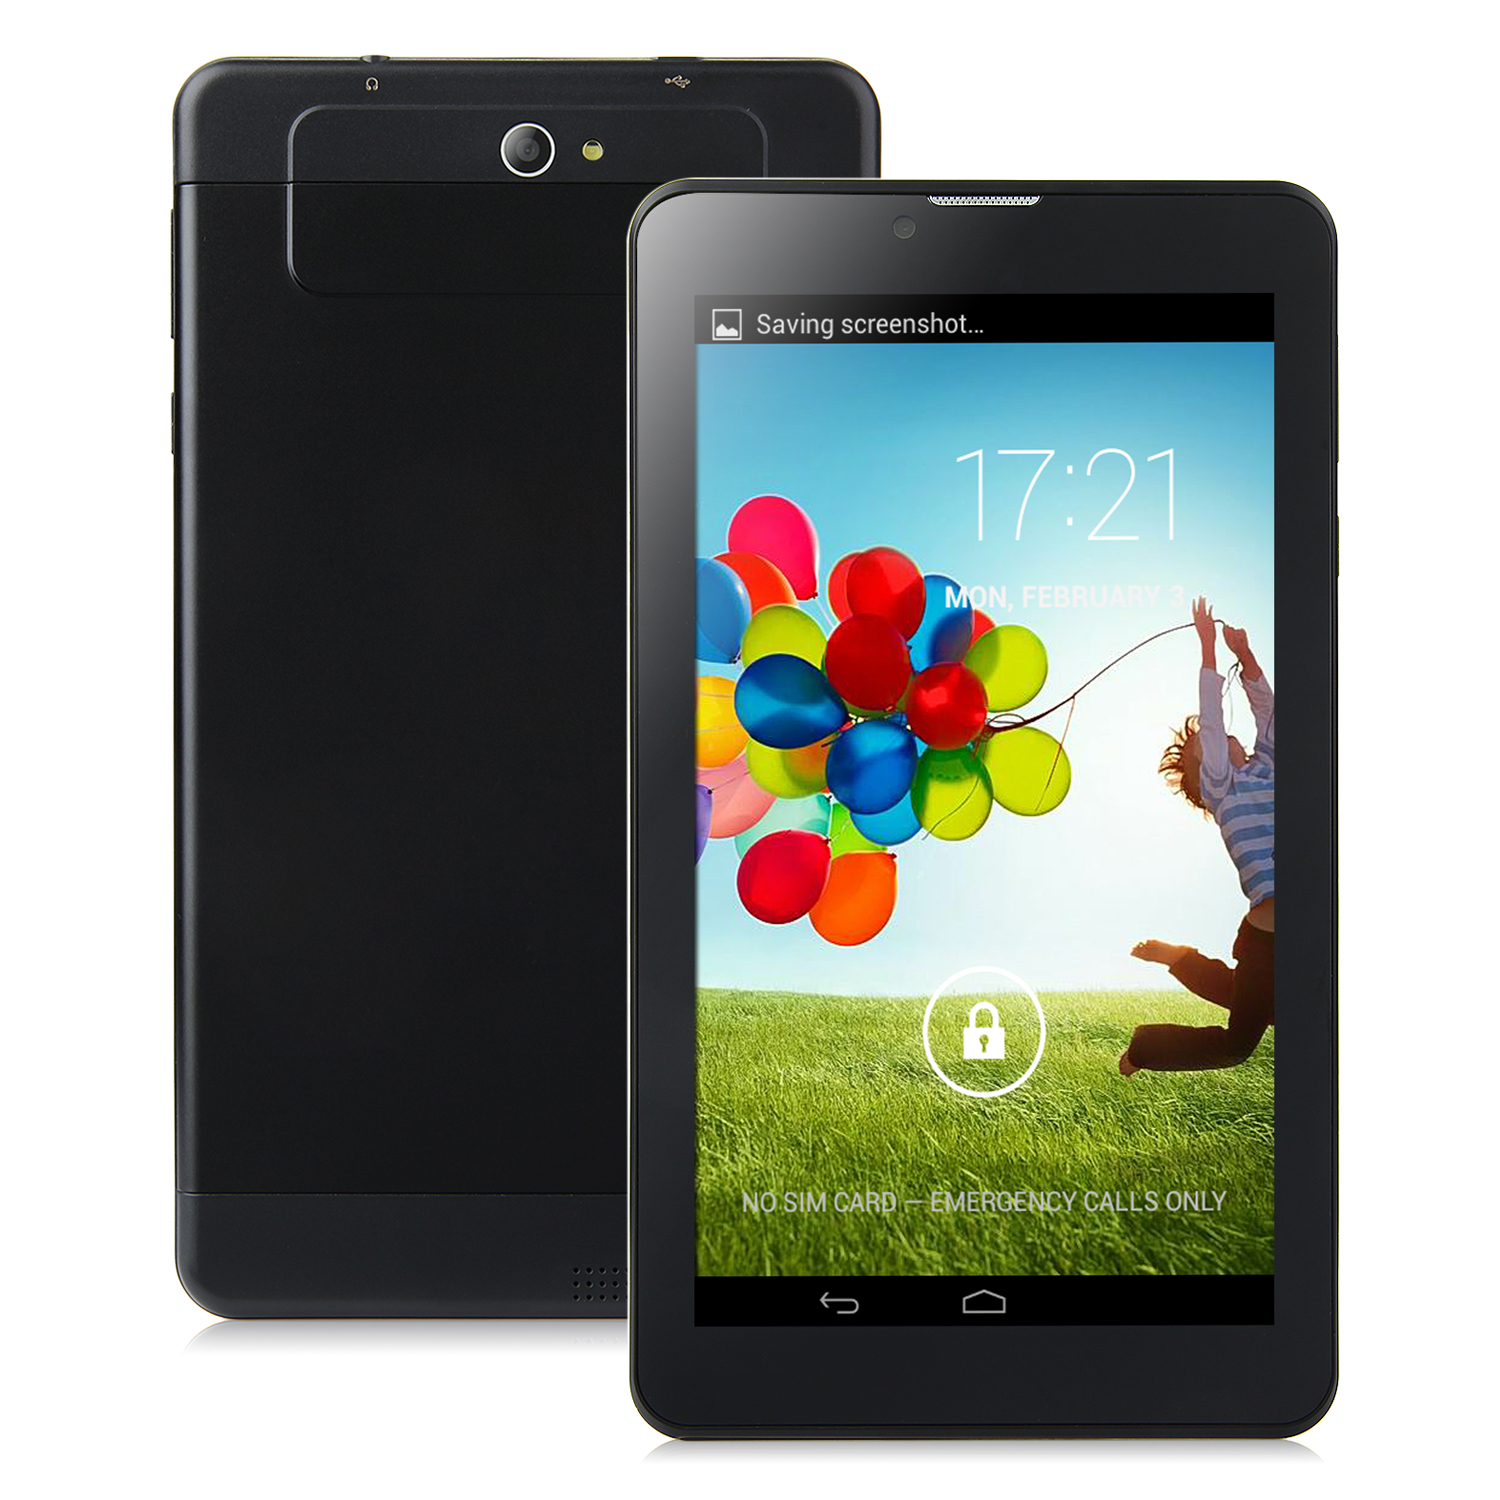 S73 3G Tablet PC 7.0 Inch Dual Core MTK6572W Android 4.2 4GB WCDMA Black